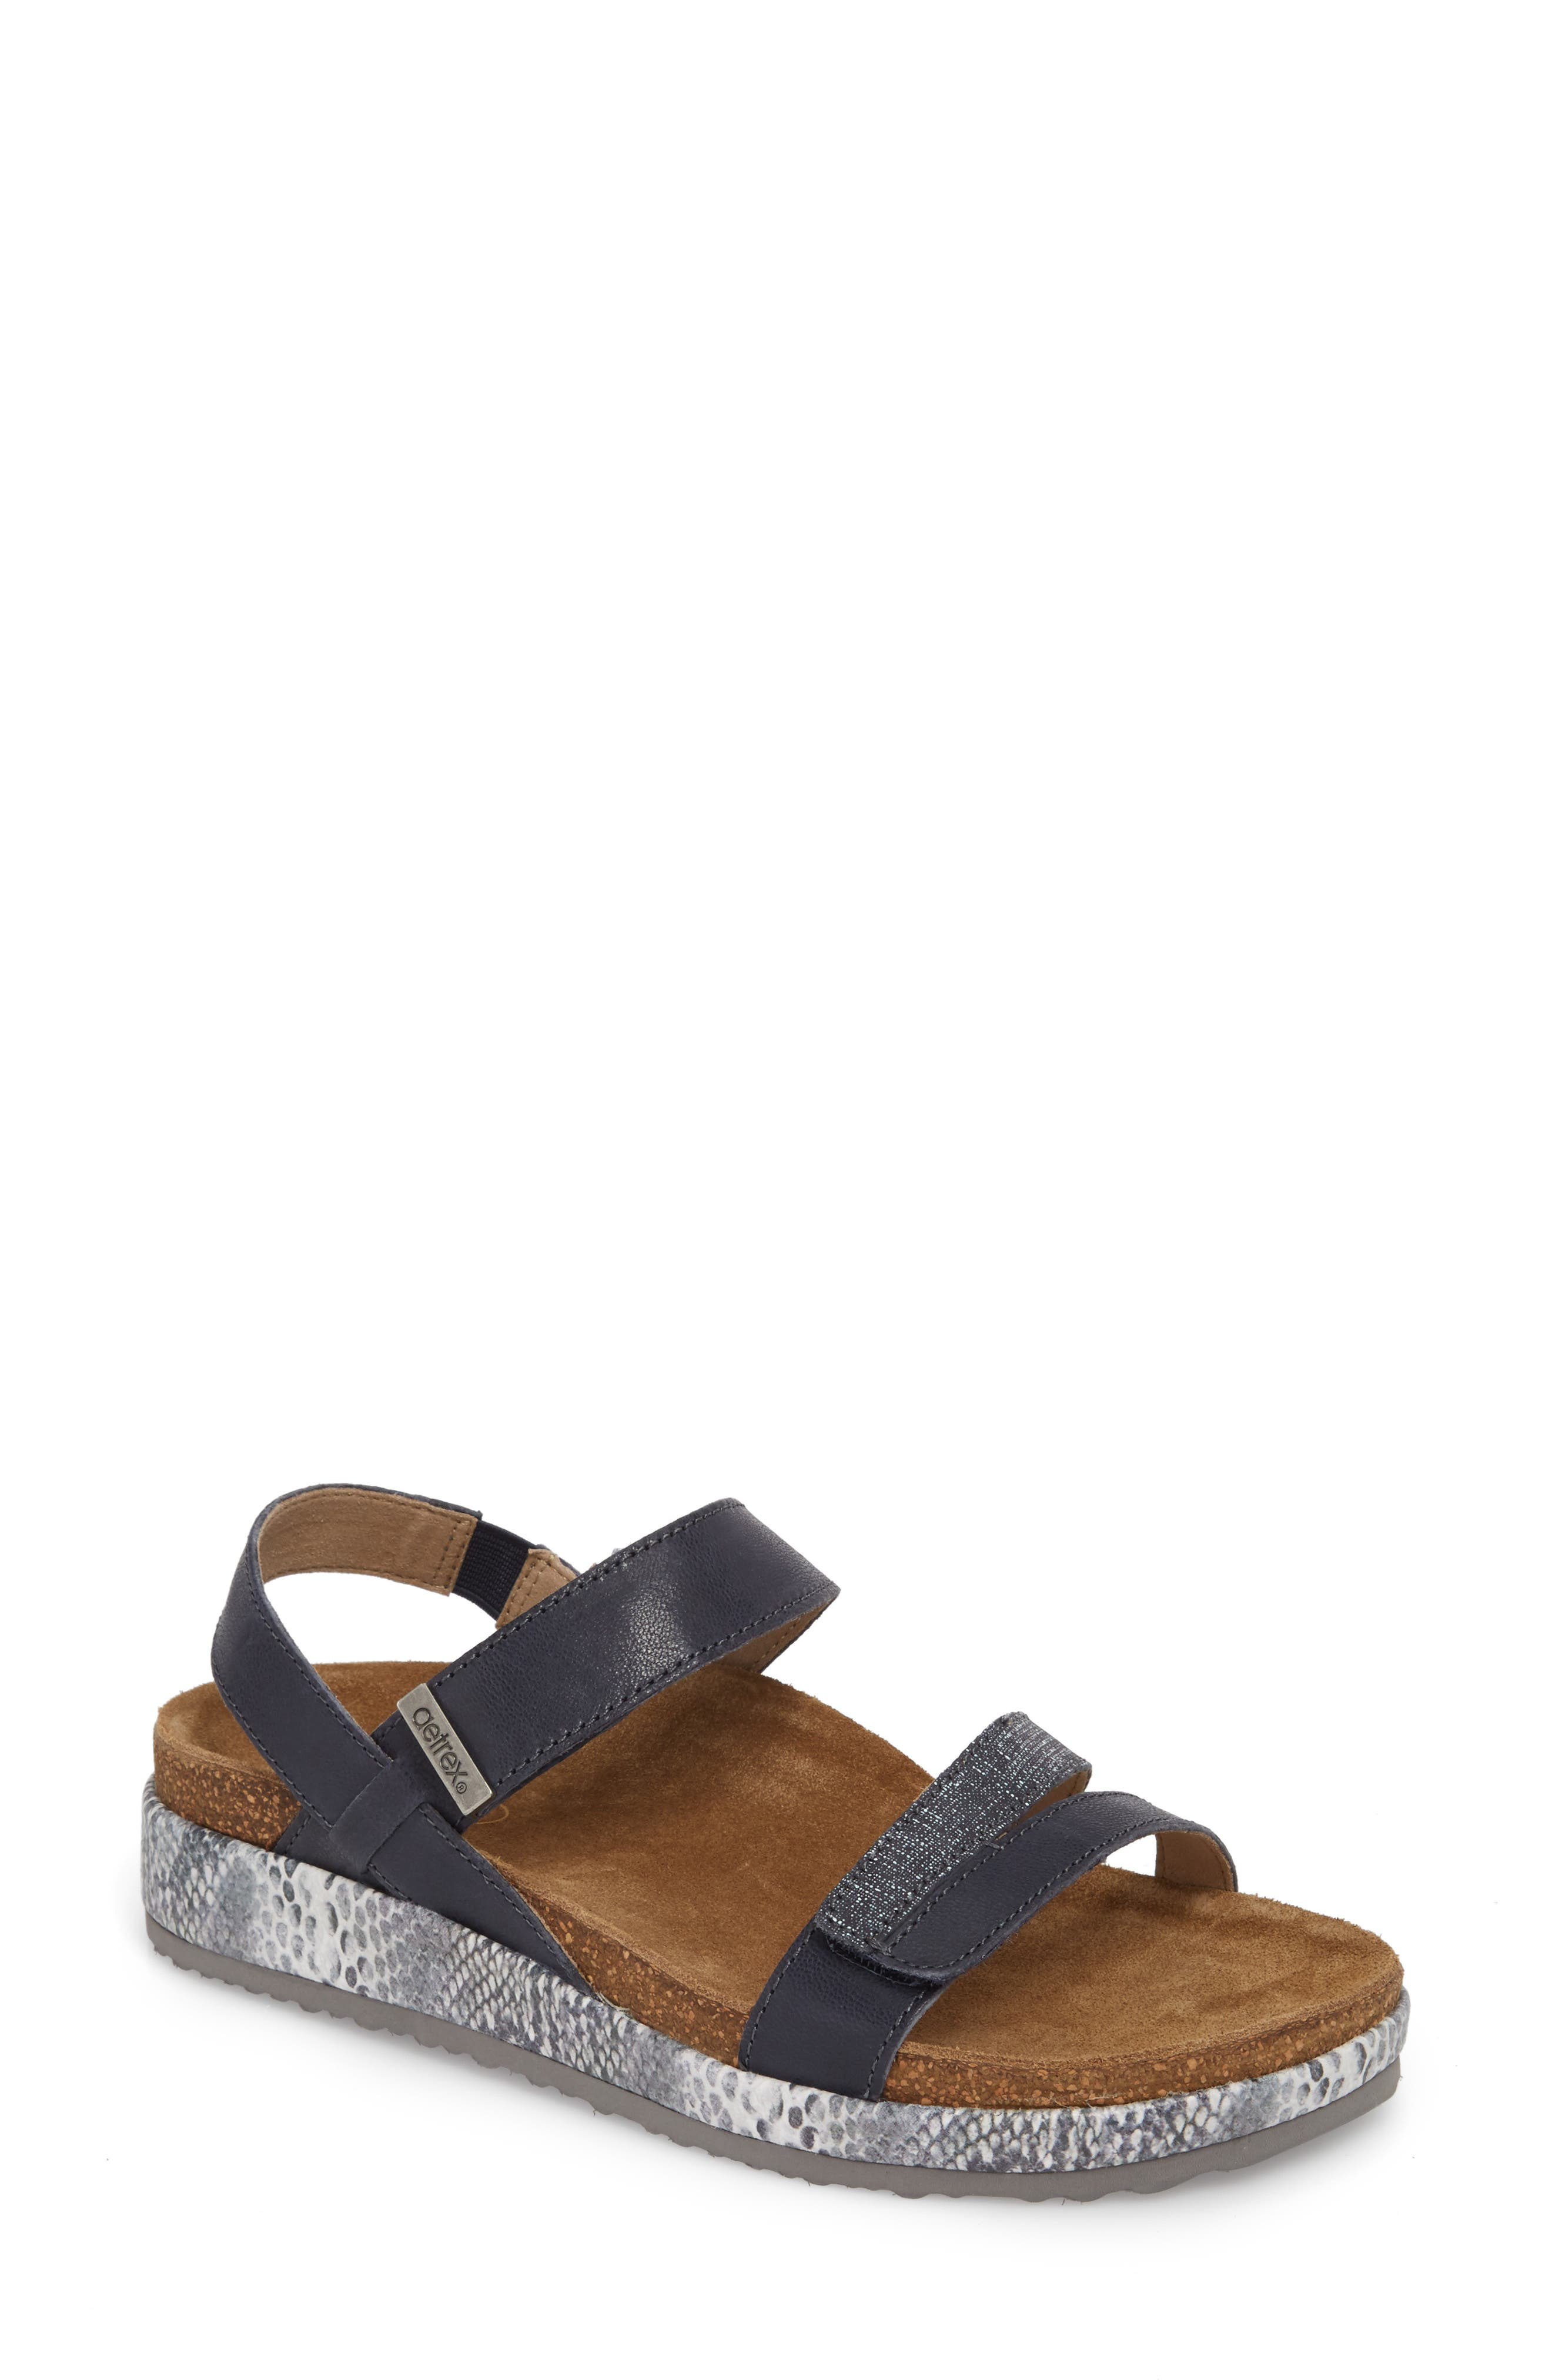 Bethany Sandal,                             Main thumbnail 1, color,                             Navy Multi Leather